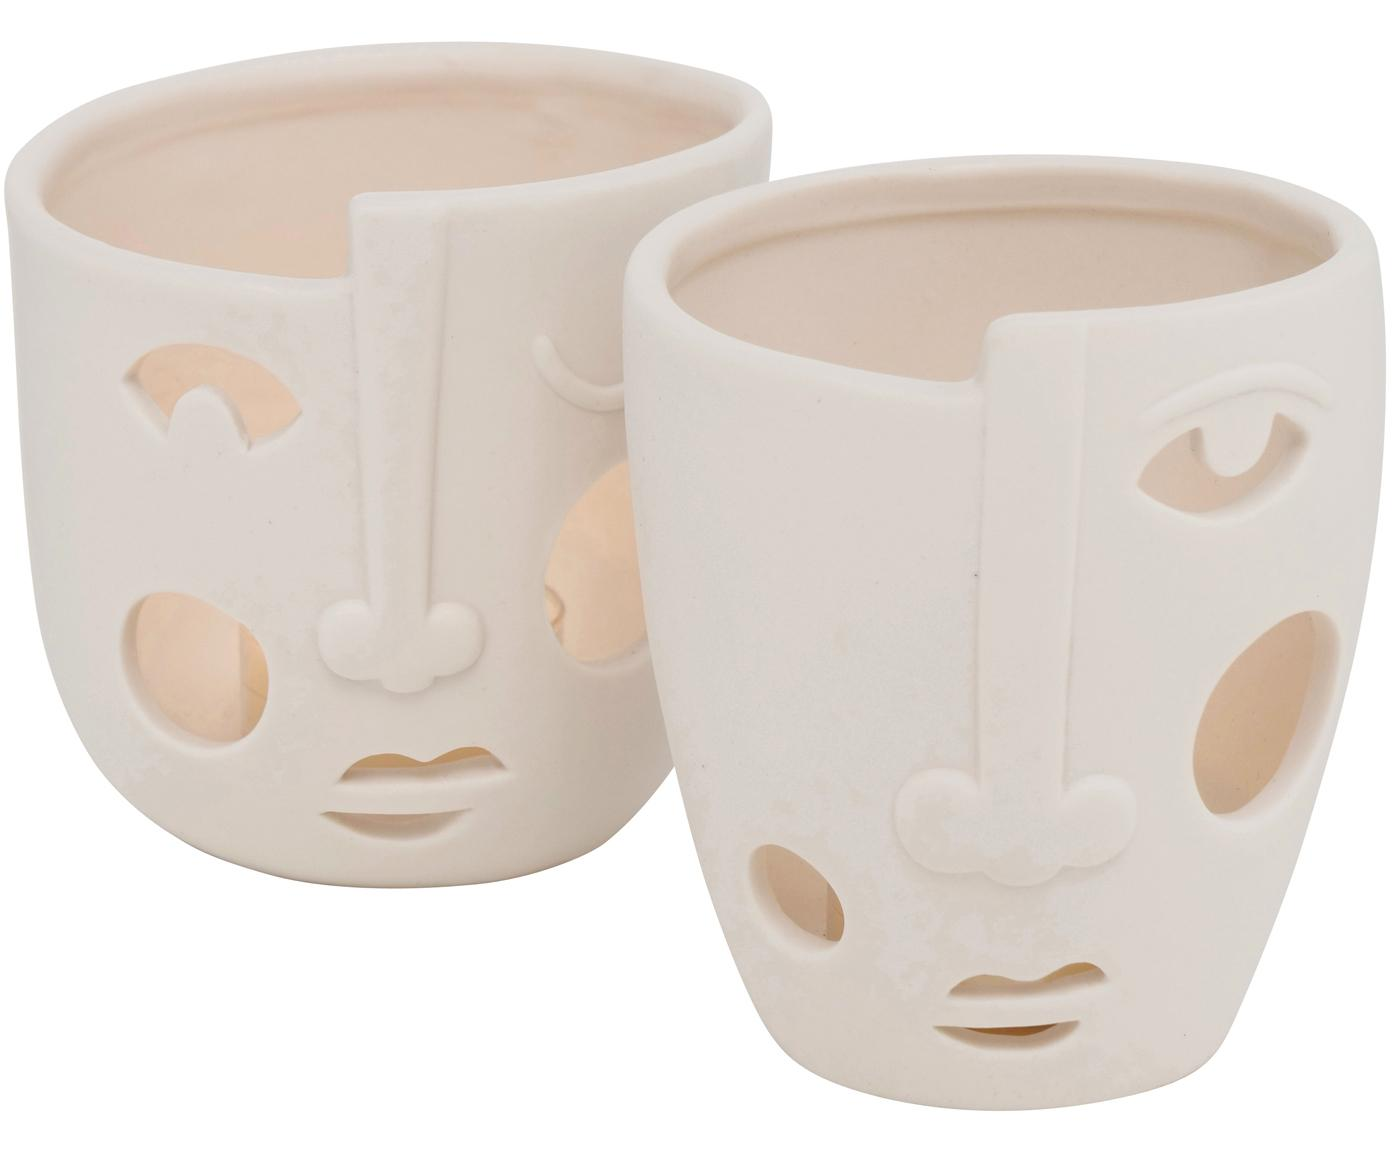 Set de portavelas Faces, 2 pzas., Porcelana, Blanco, Ø 9 x 9 cm